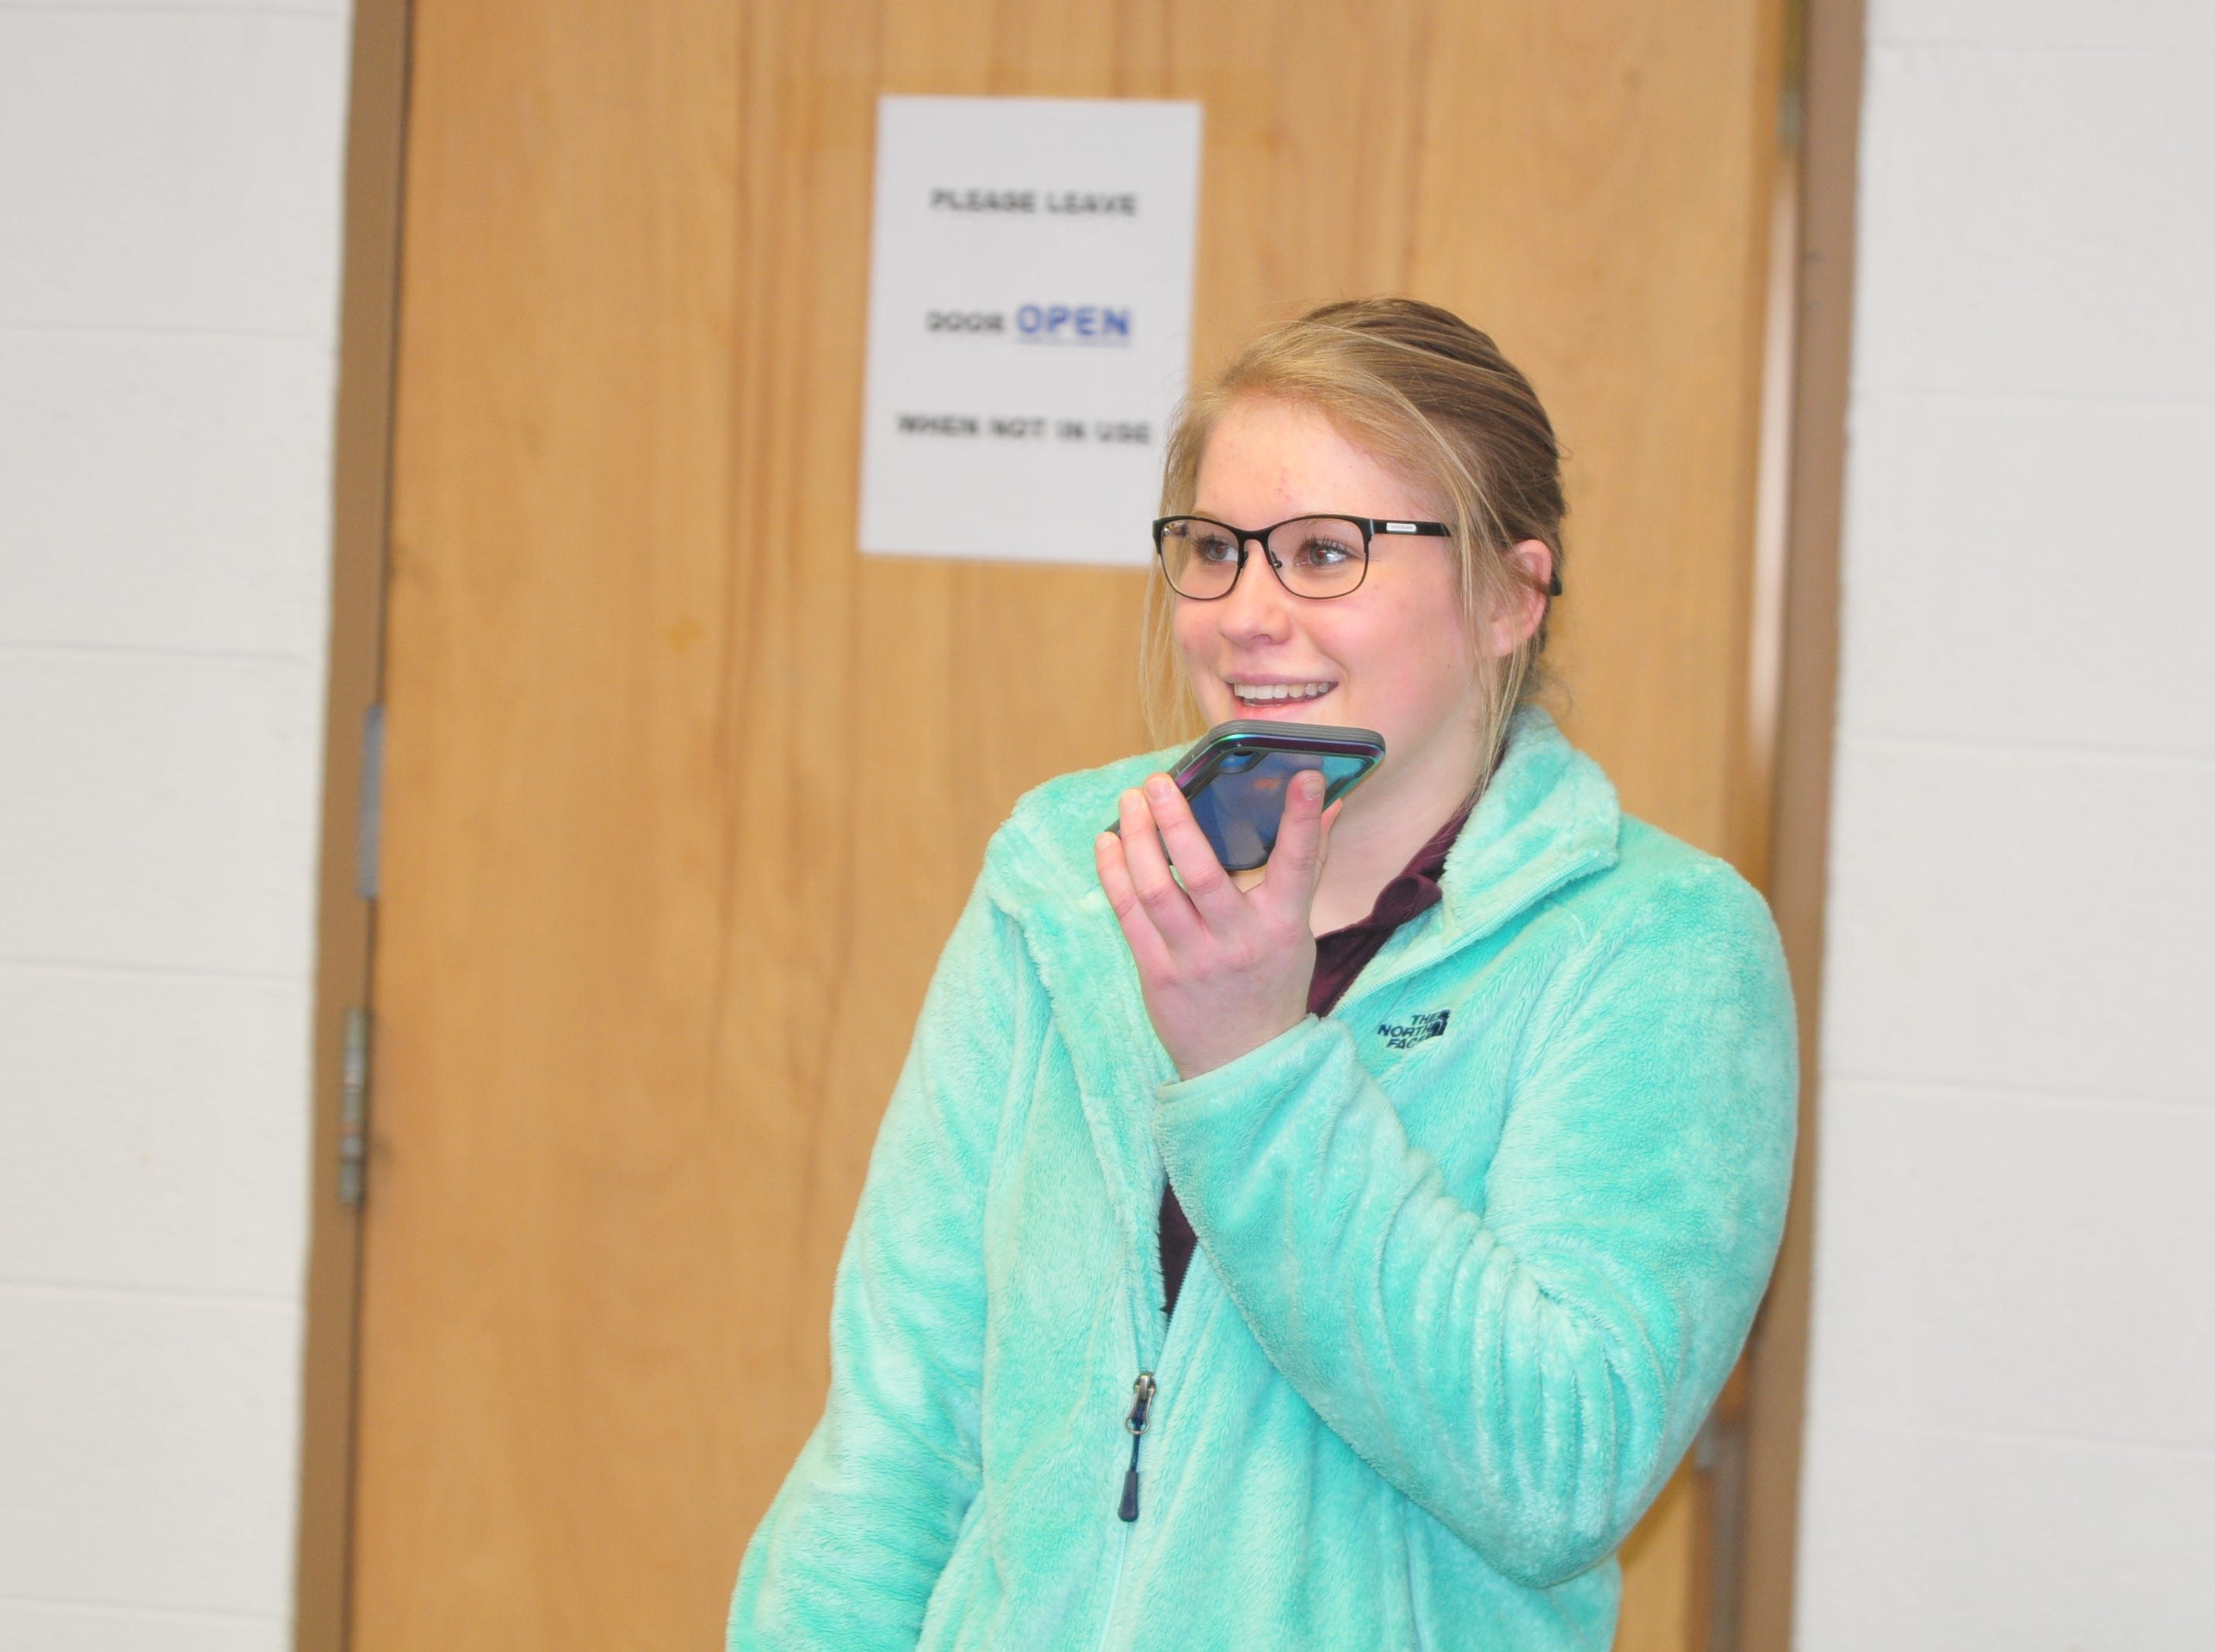 Centerville High School senior Molly Coomes talks on the phone with her father after learning that she is a recipient of the Wayne County Foundation's Lily Endowment Community Scholarship at Centerville High School Tuesday, Dec. 11, 2018.